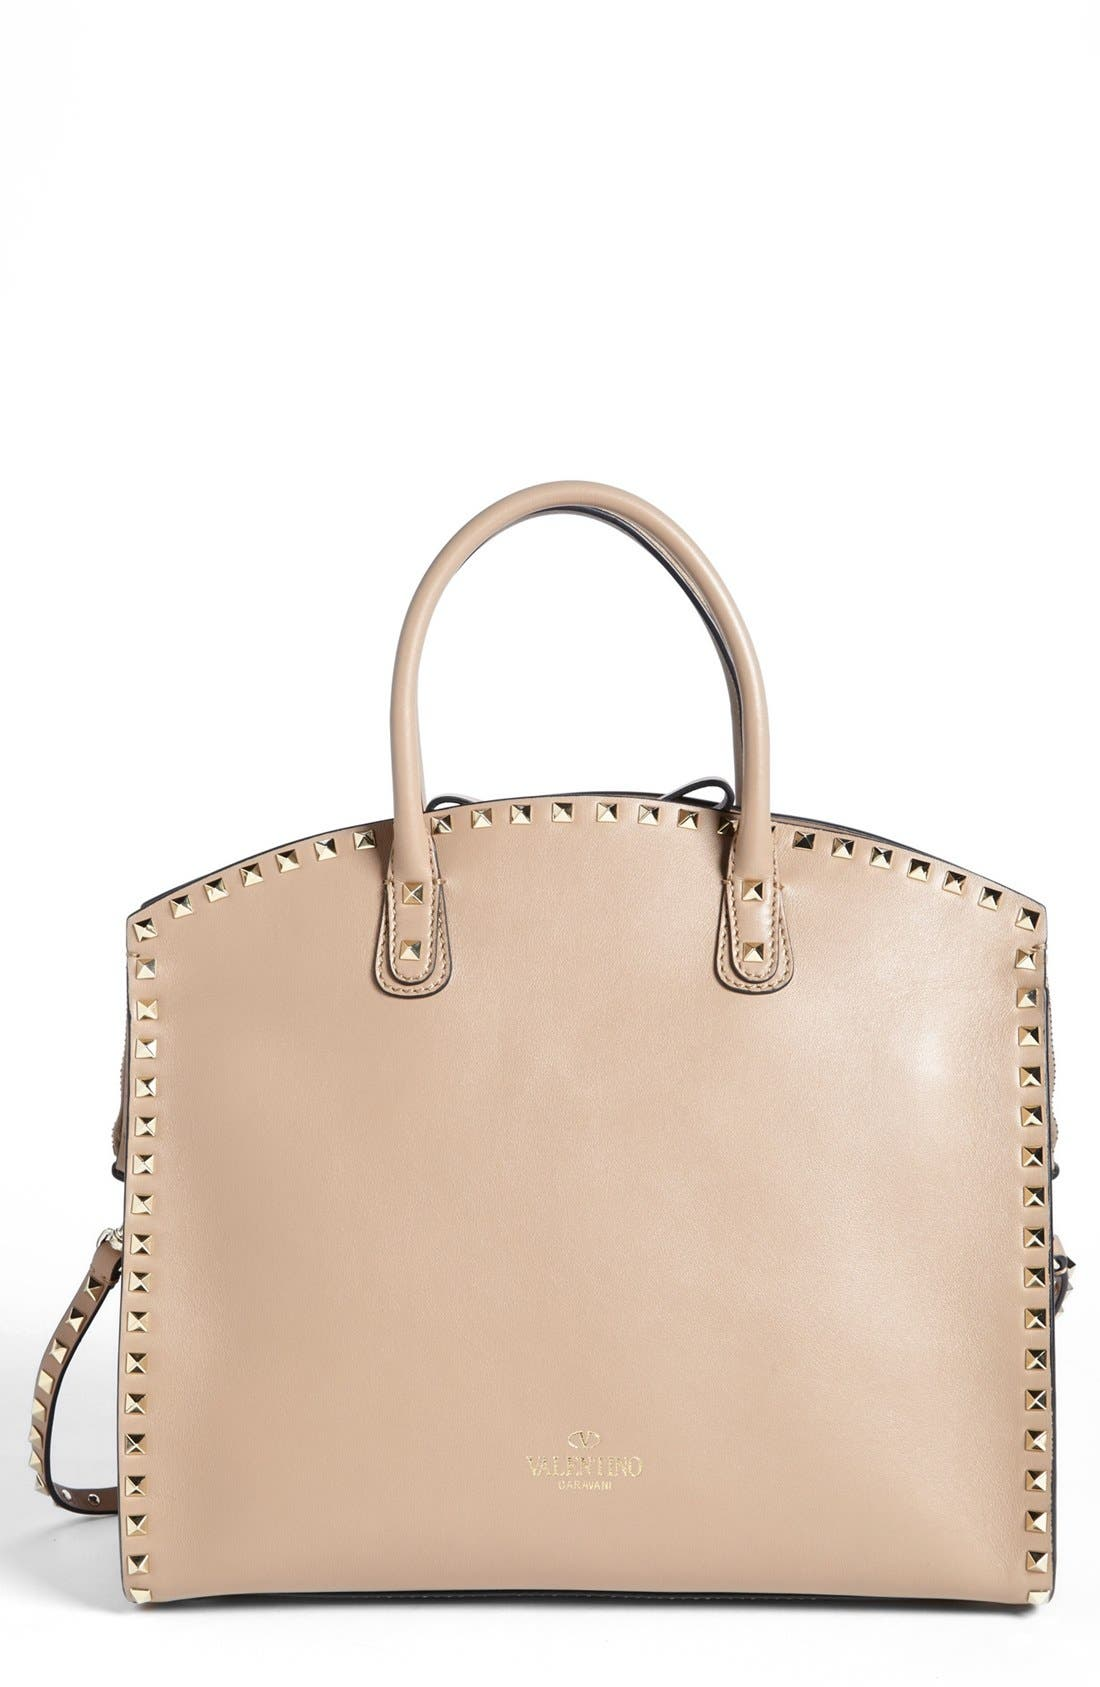 Alternate Image 1 Selected - Valentino 'Rockstud' Leather Dome Satchel